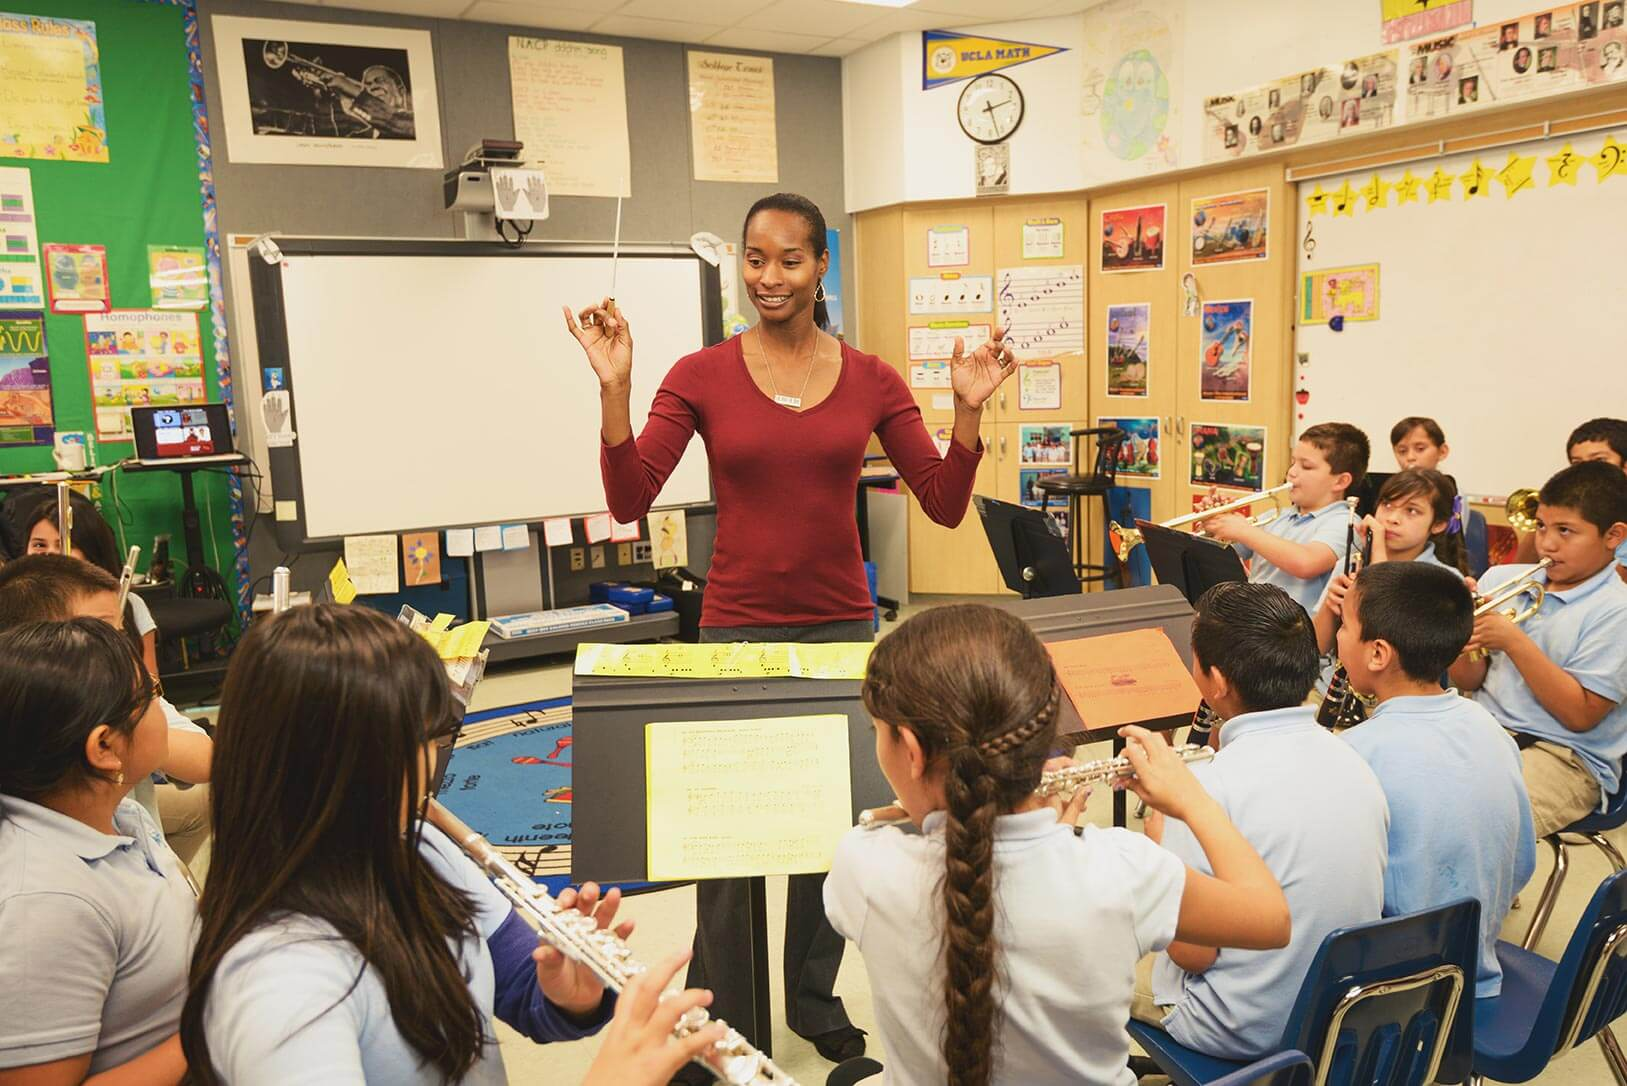 New Academy Elementary School teacher Genuine Letford leads students in her music class.